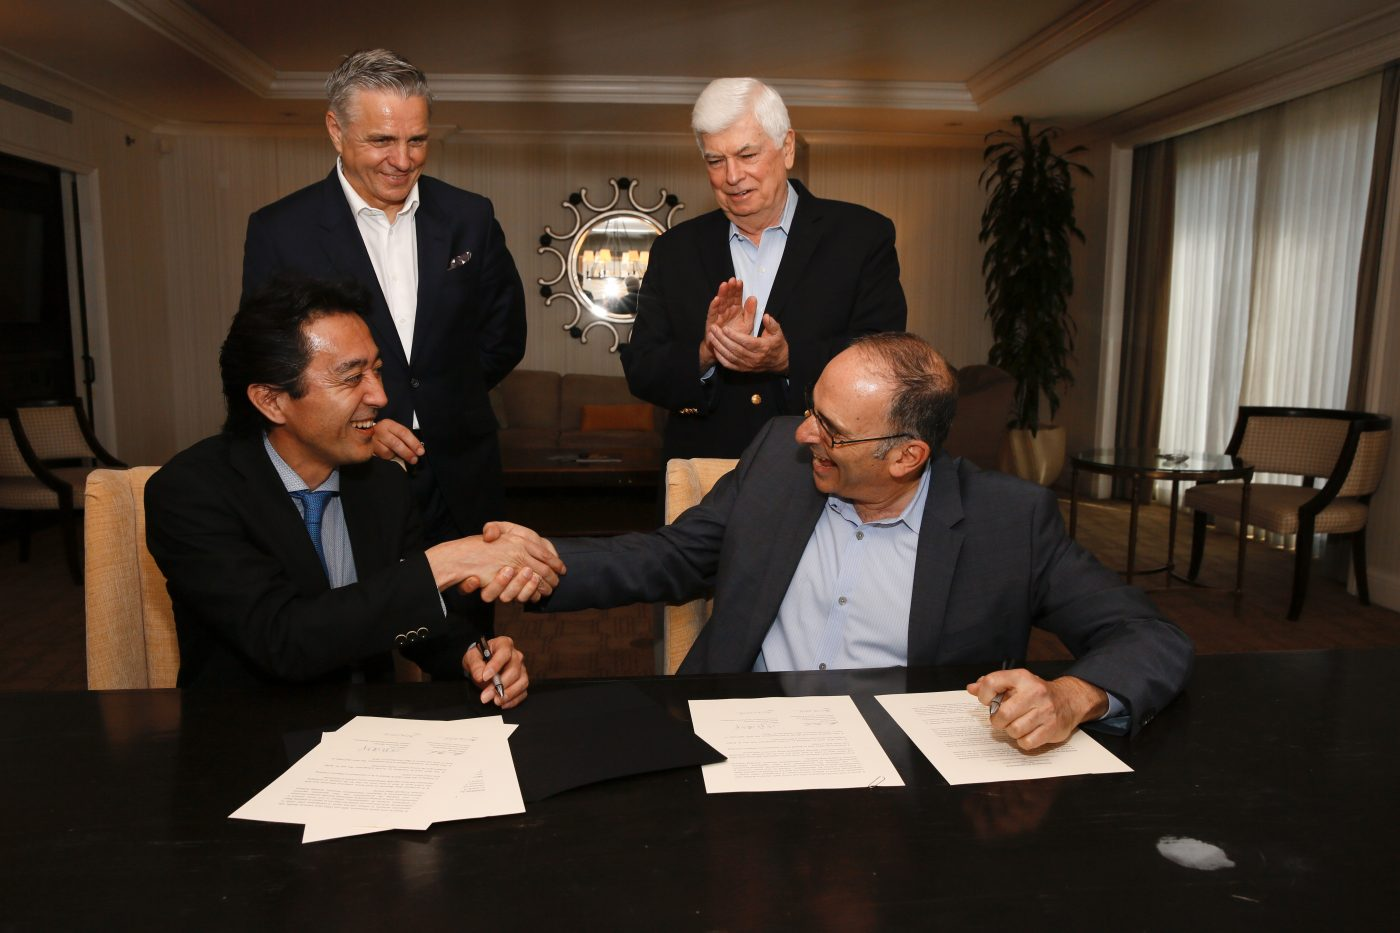 MPAA Document Signing at CinemaCon 2016